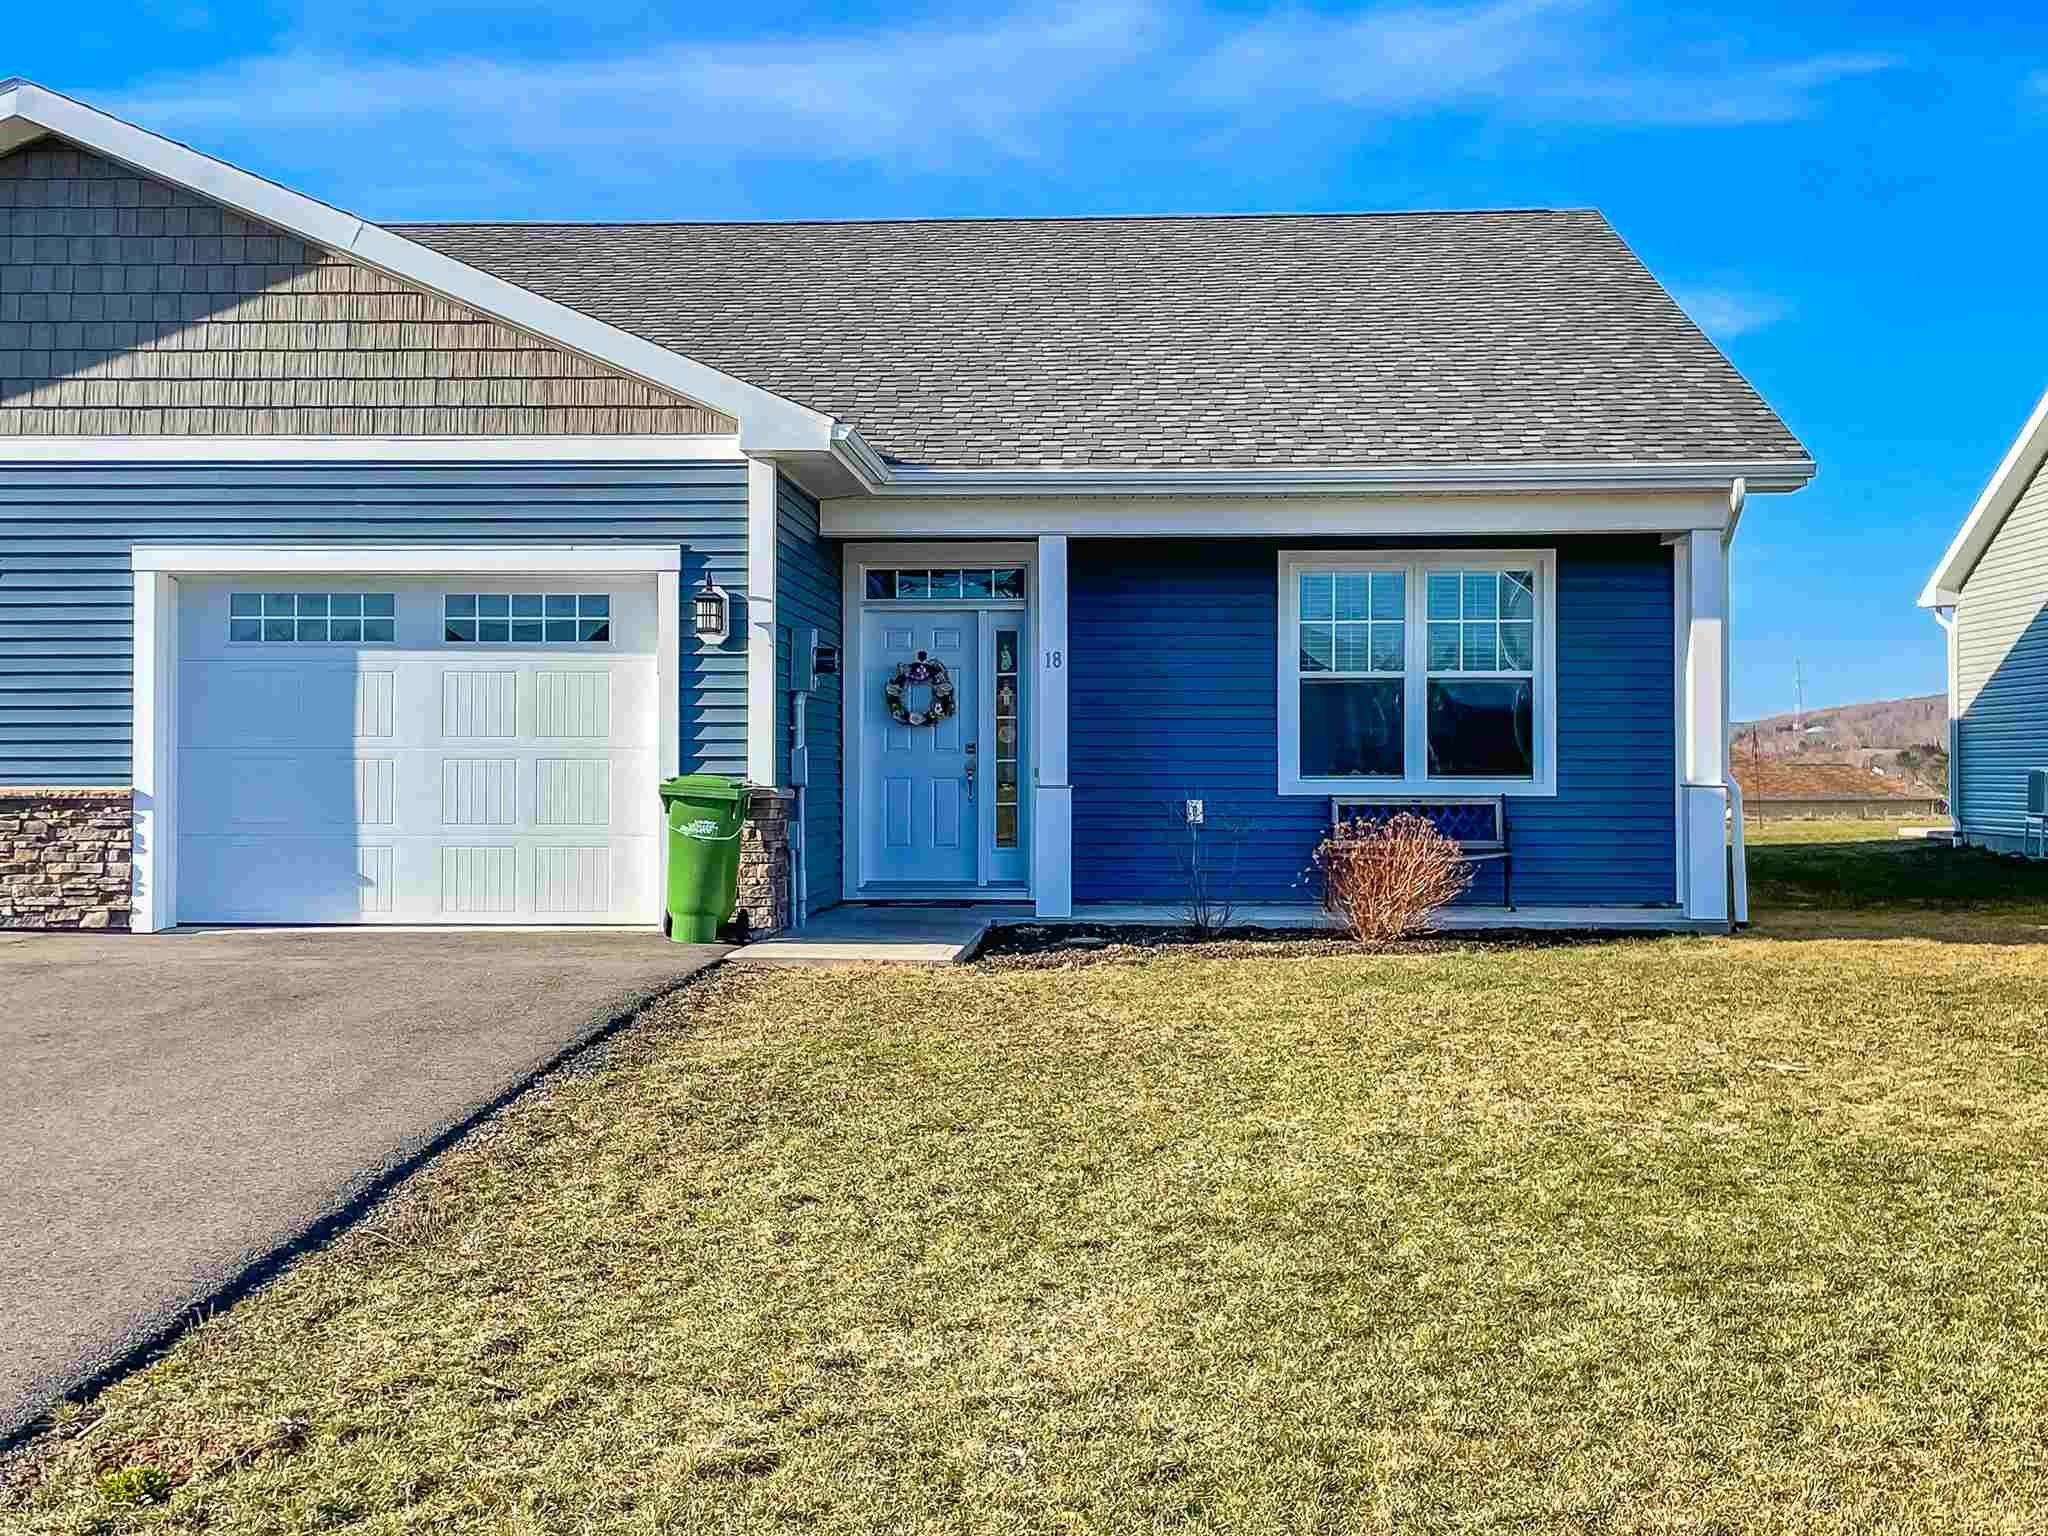 Main Photo: 18 MacKinnon Court in Kentville: 404-Kings County Residential for sale (Annapolis Valley)  : MLS®# 202107294